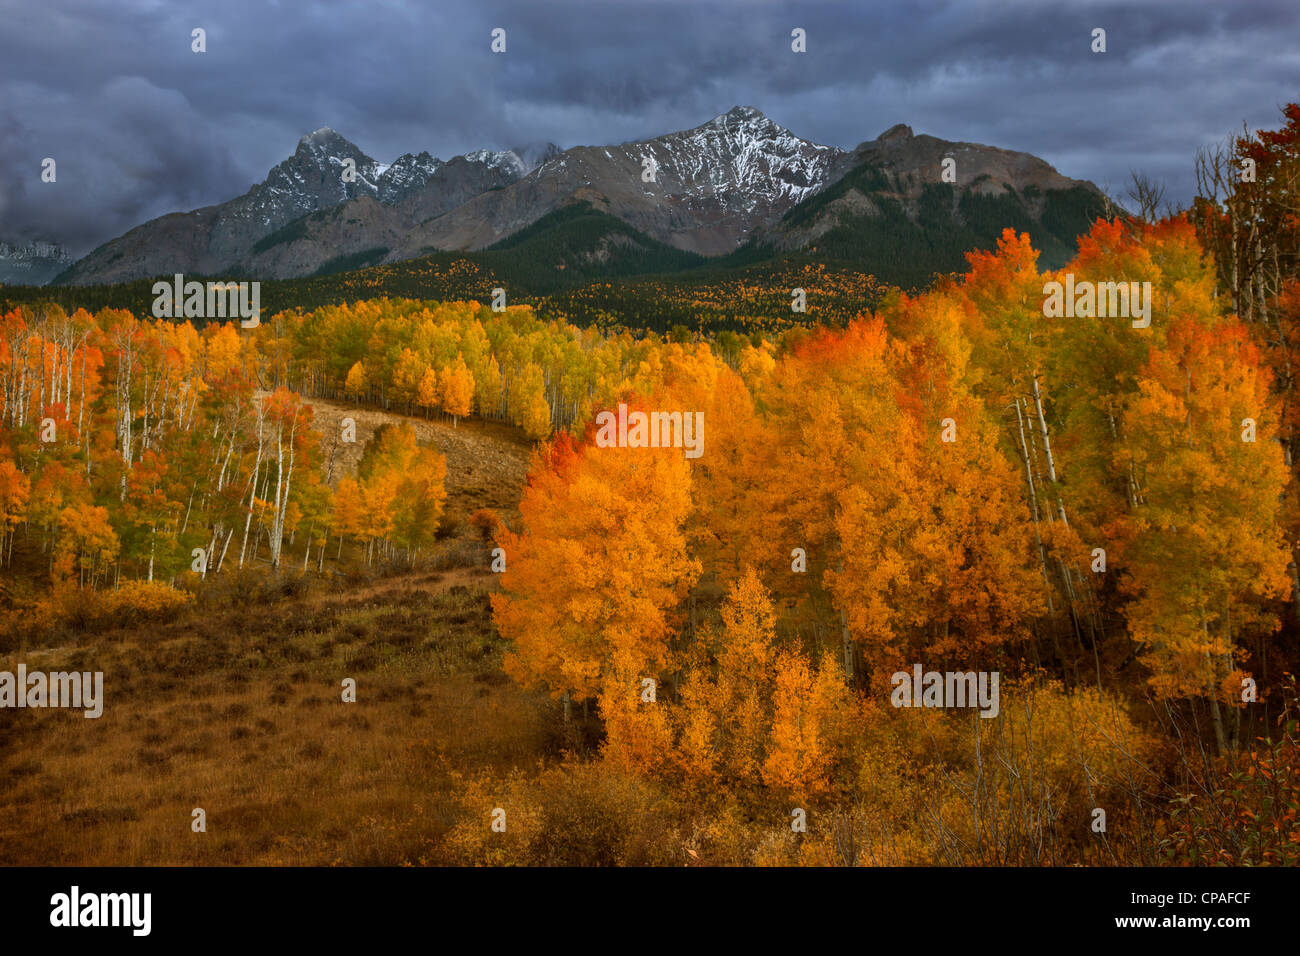 USA, Colorado, Sneffels Range. Dark clouds foretell an autumn storm over fall-covered aspen groves - Stock Image